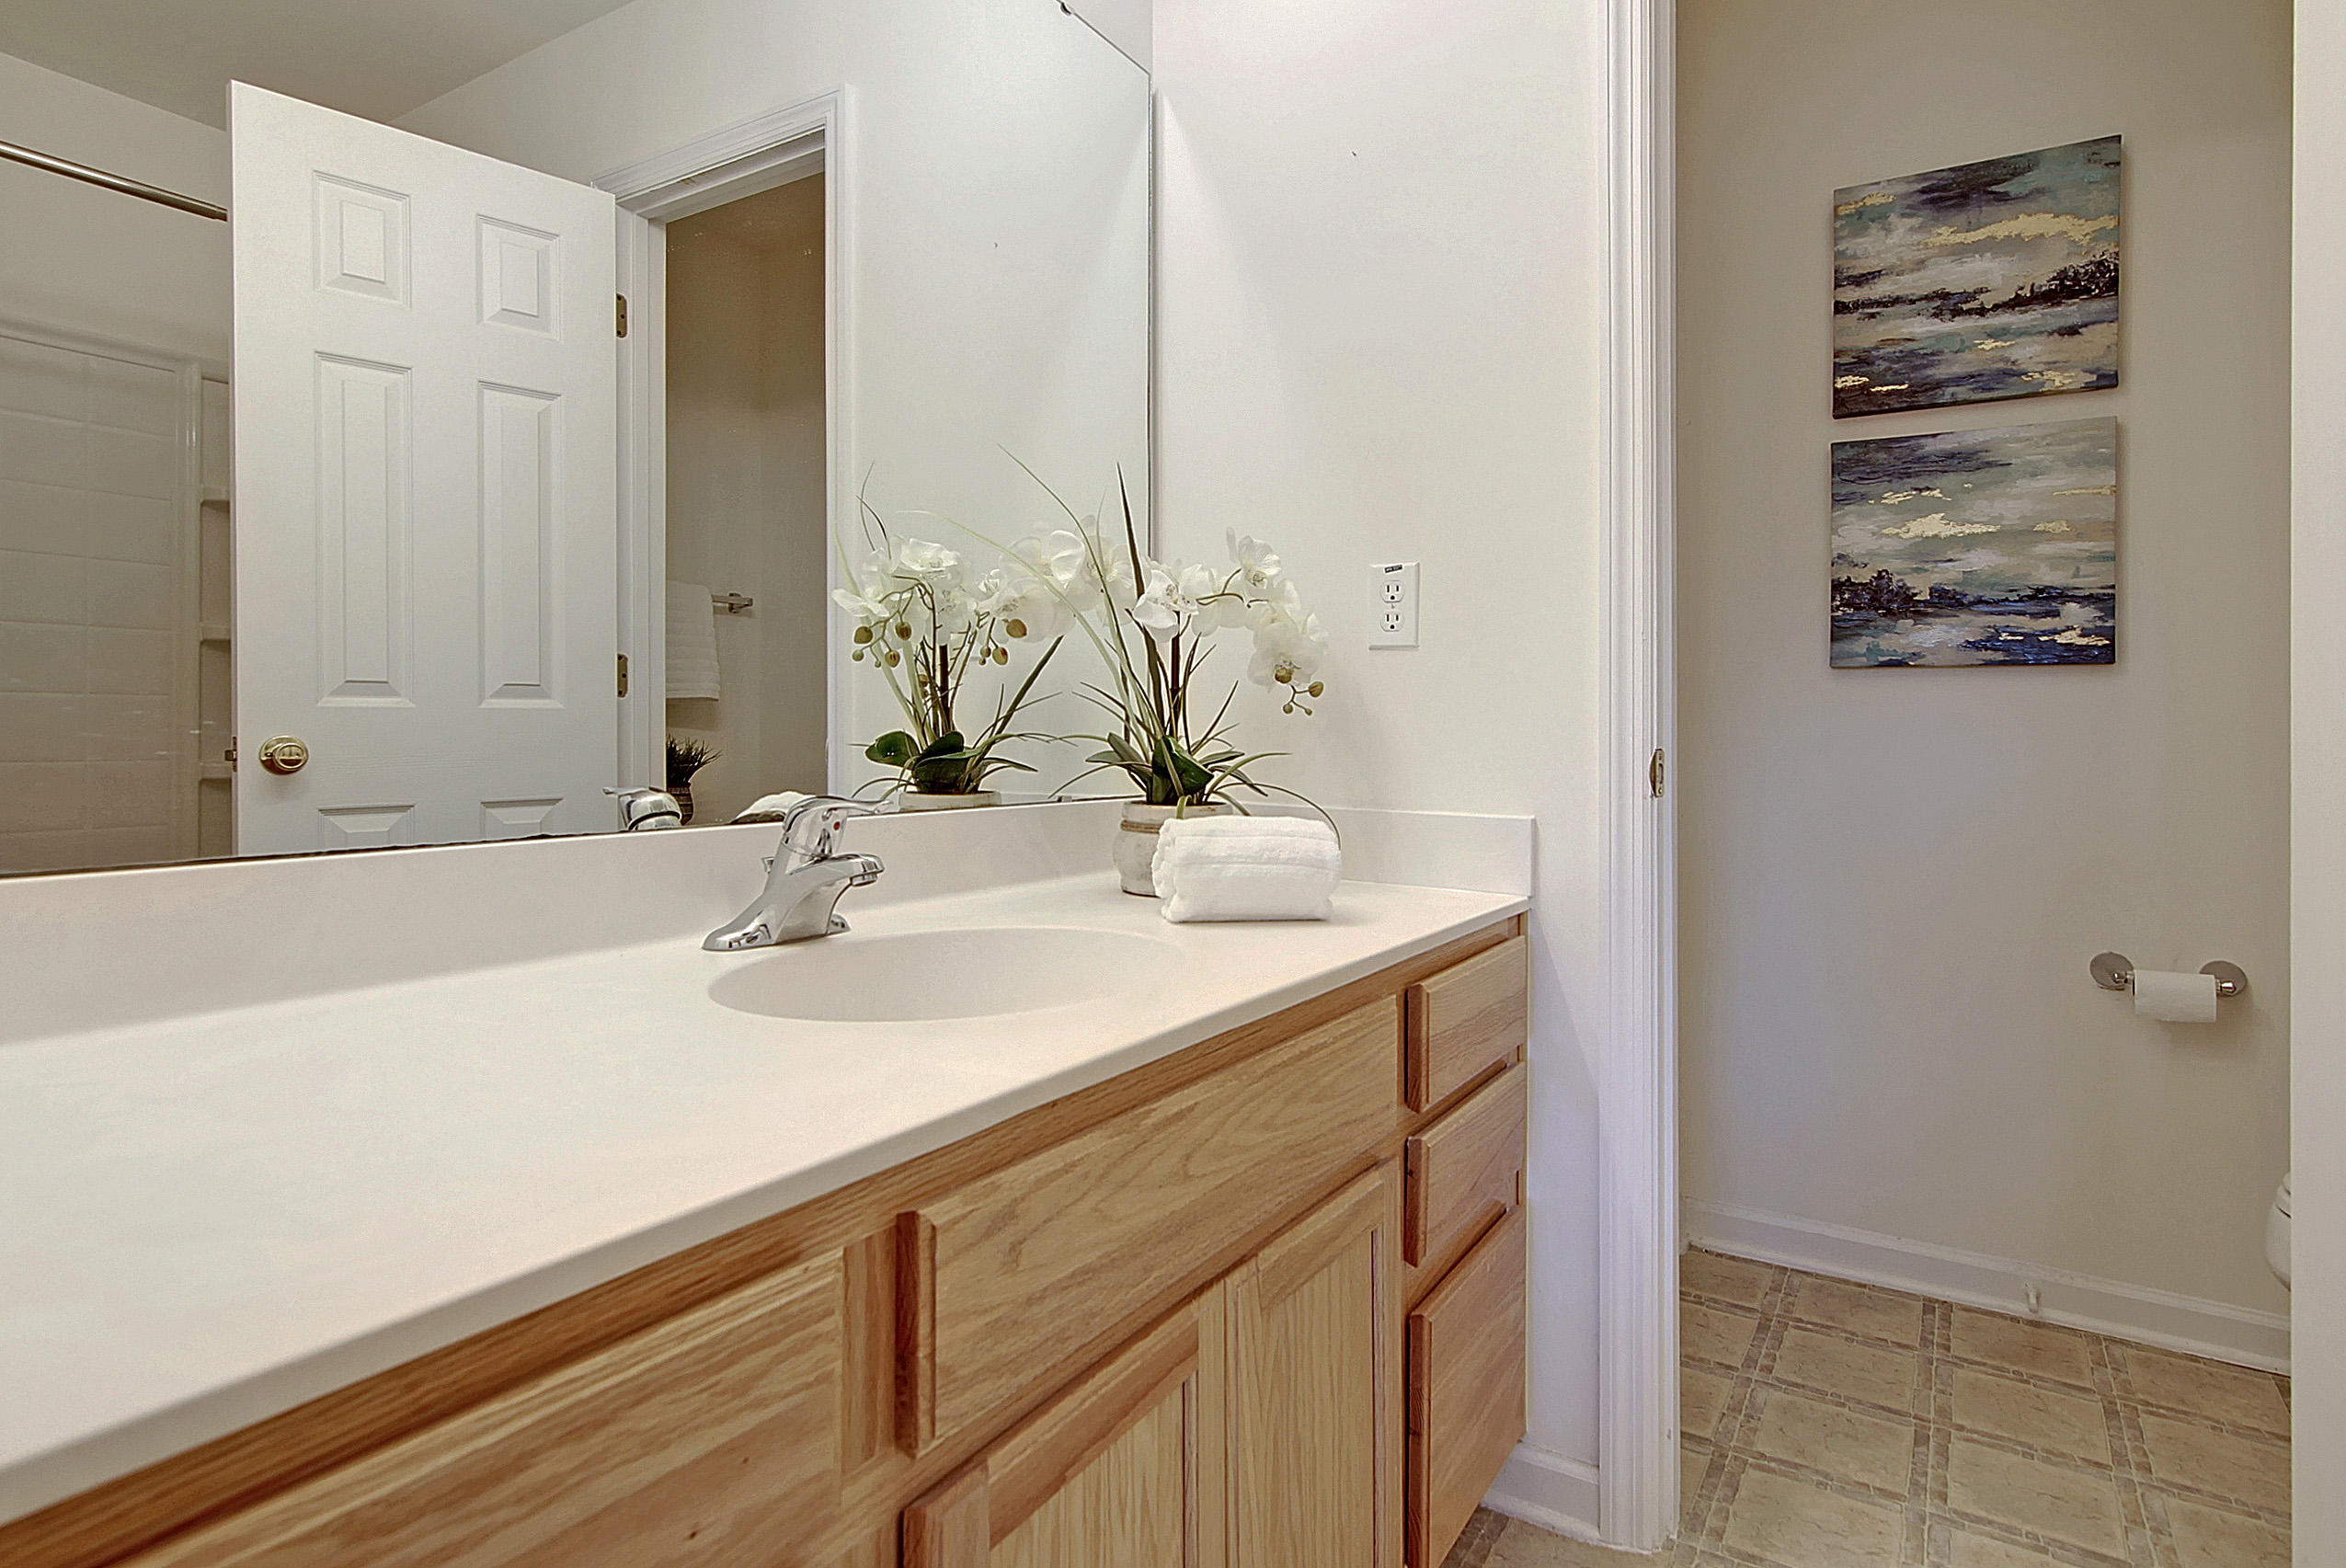 Coosaw Commons Homes For Sale - 5228 Fernland, North Charleston, SC - 0